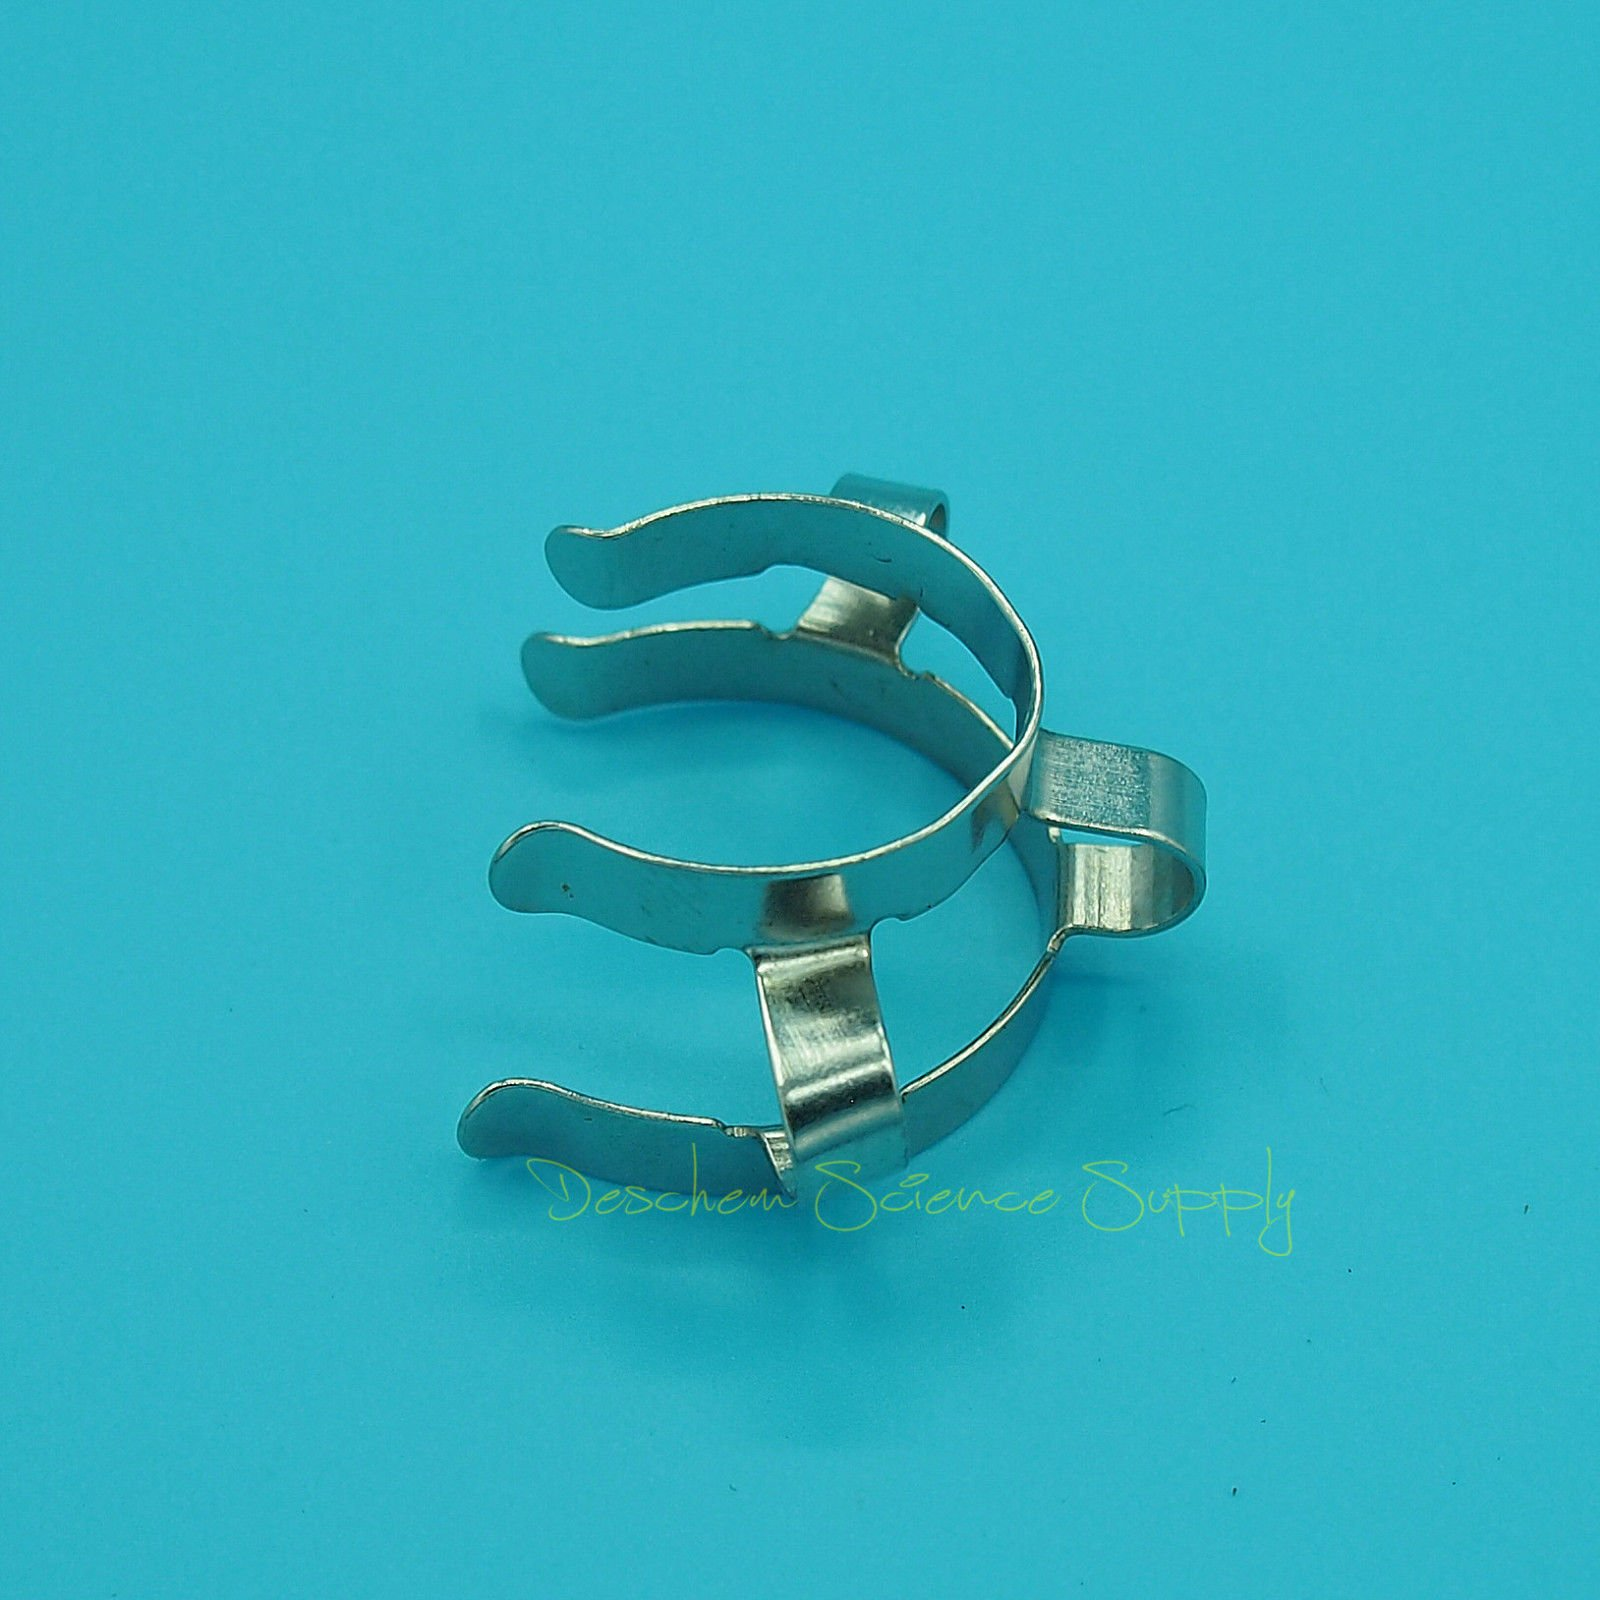 Deschem 20Pcs 24#,Metal Clip,Keck Clamp,24/29 & 24/40 Glass Ground Joint by Deschem (Image #3)